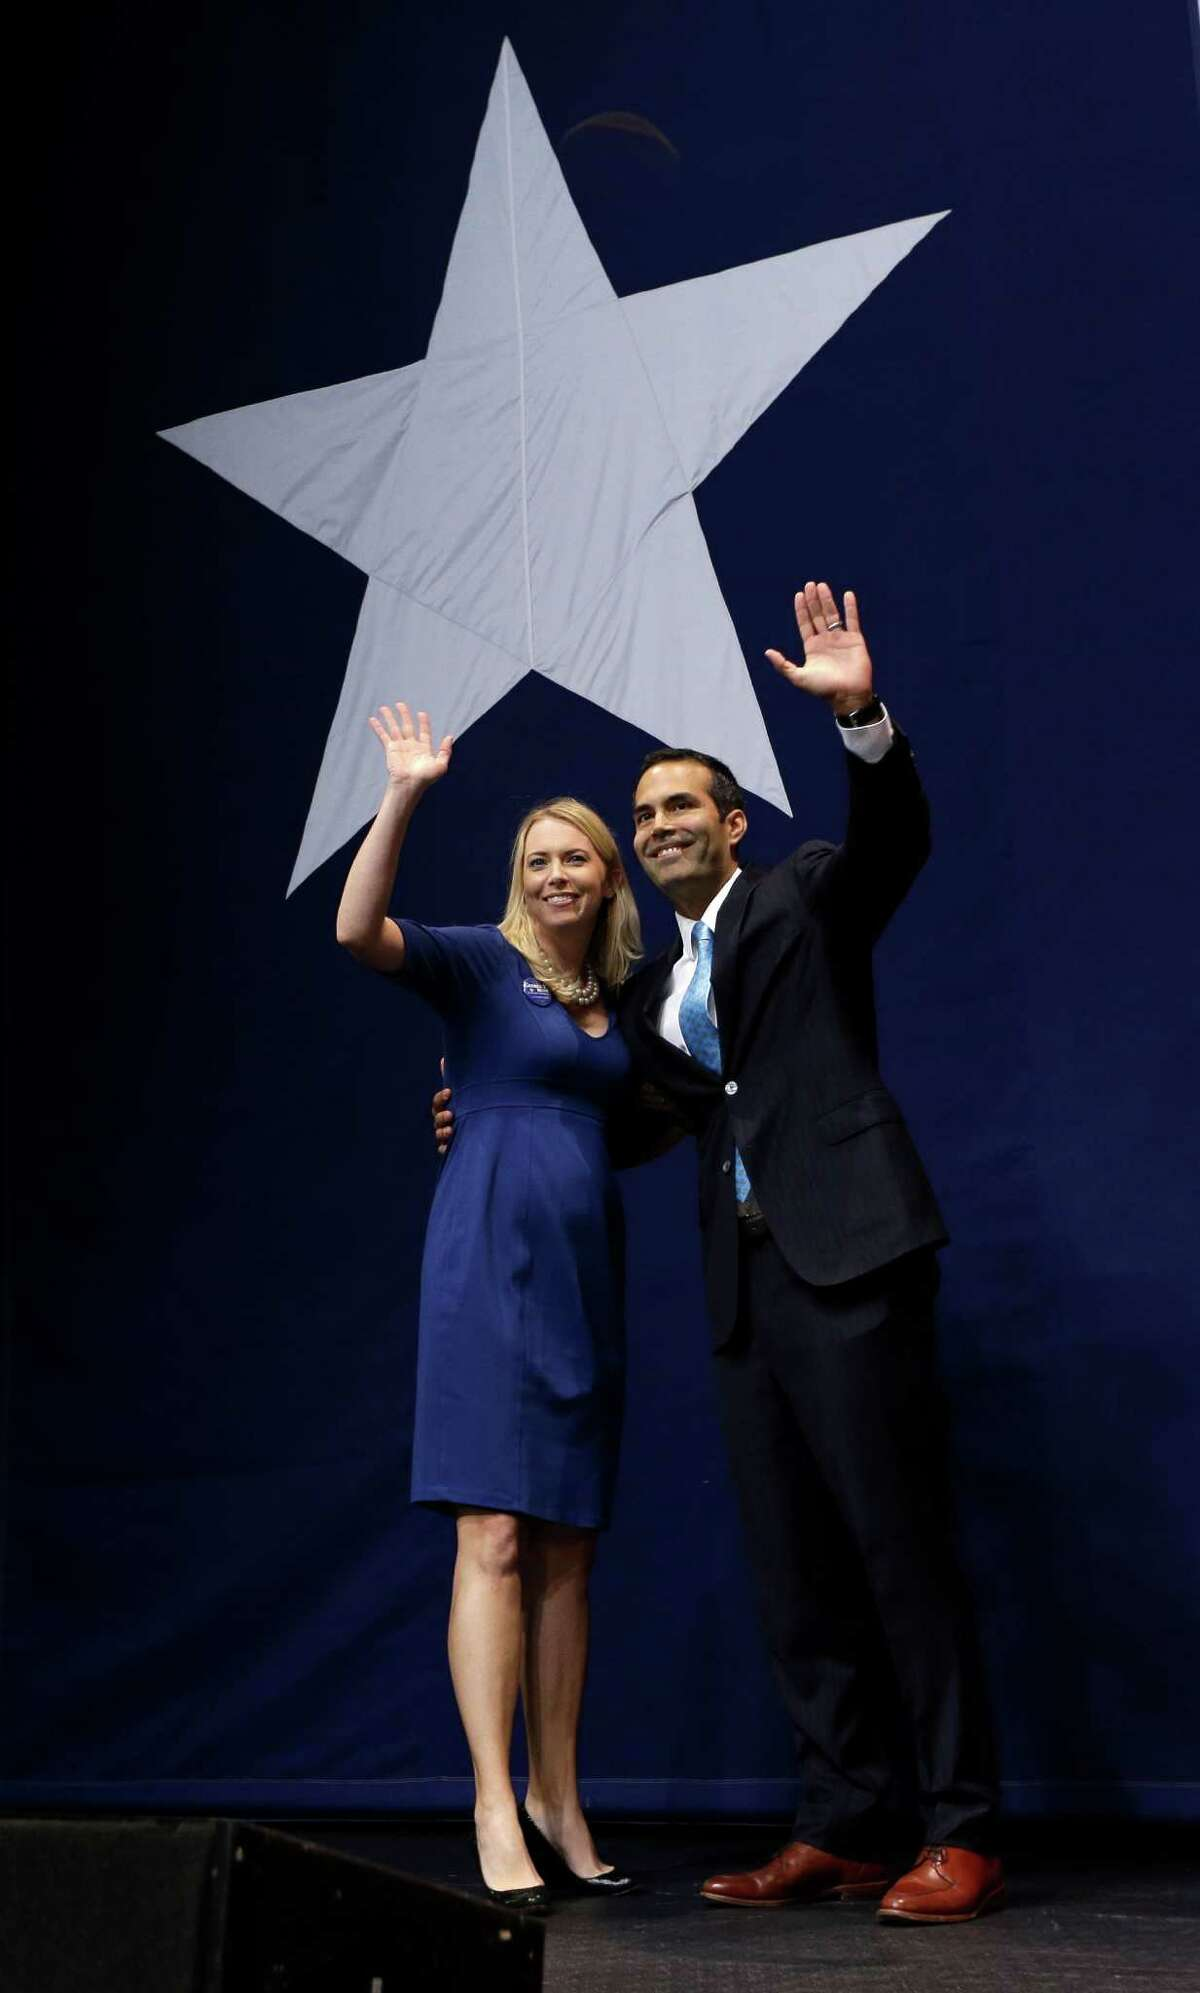 George P. Bush and his wife, Amanda, acknowledge the crowd after his victory speech in Austin following his win in the race for Texas land commissioner on Tuesday.